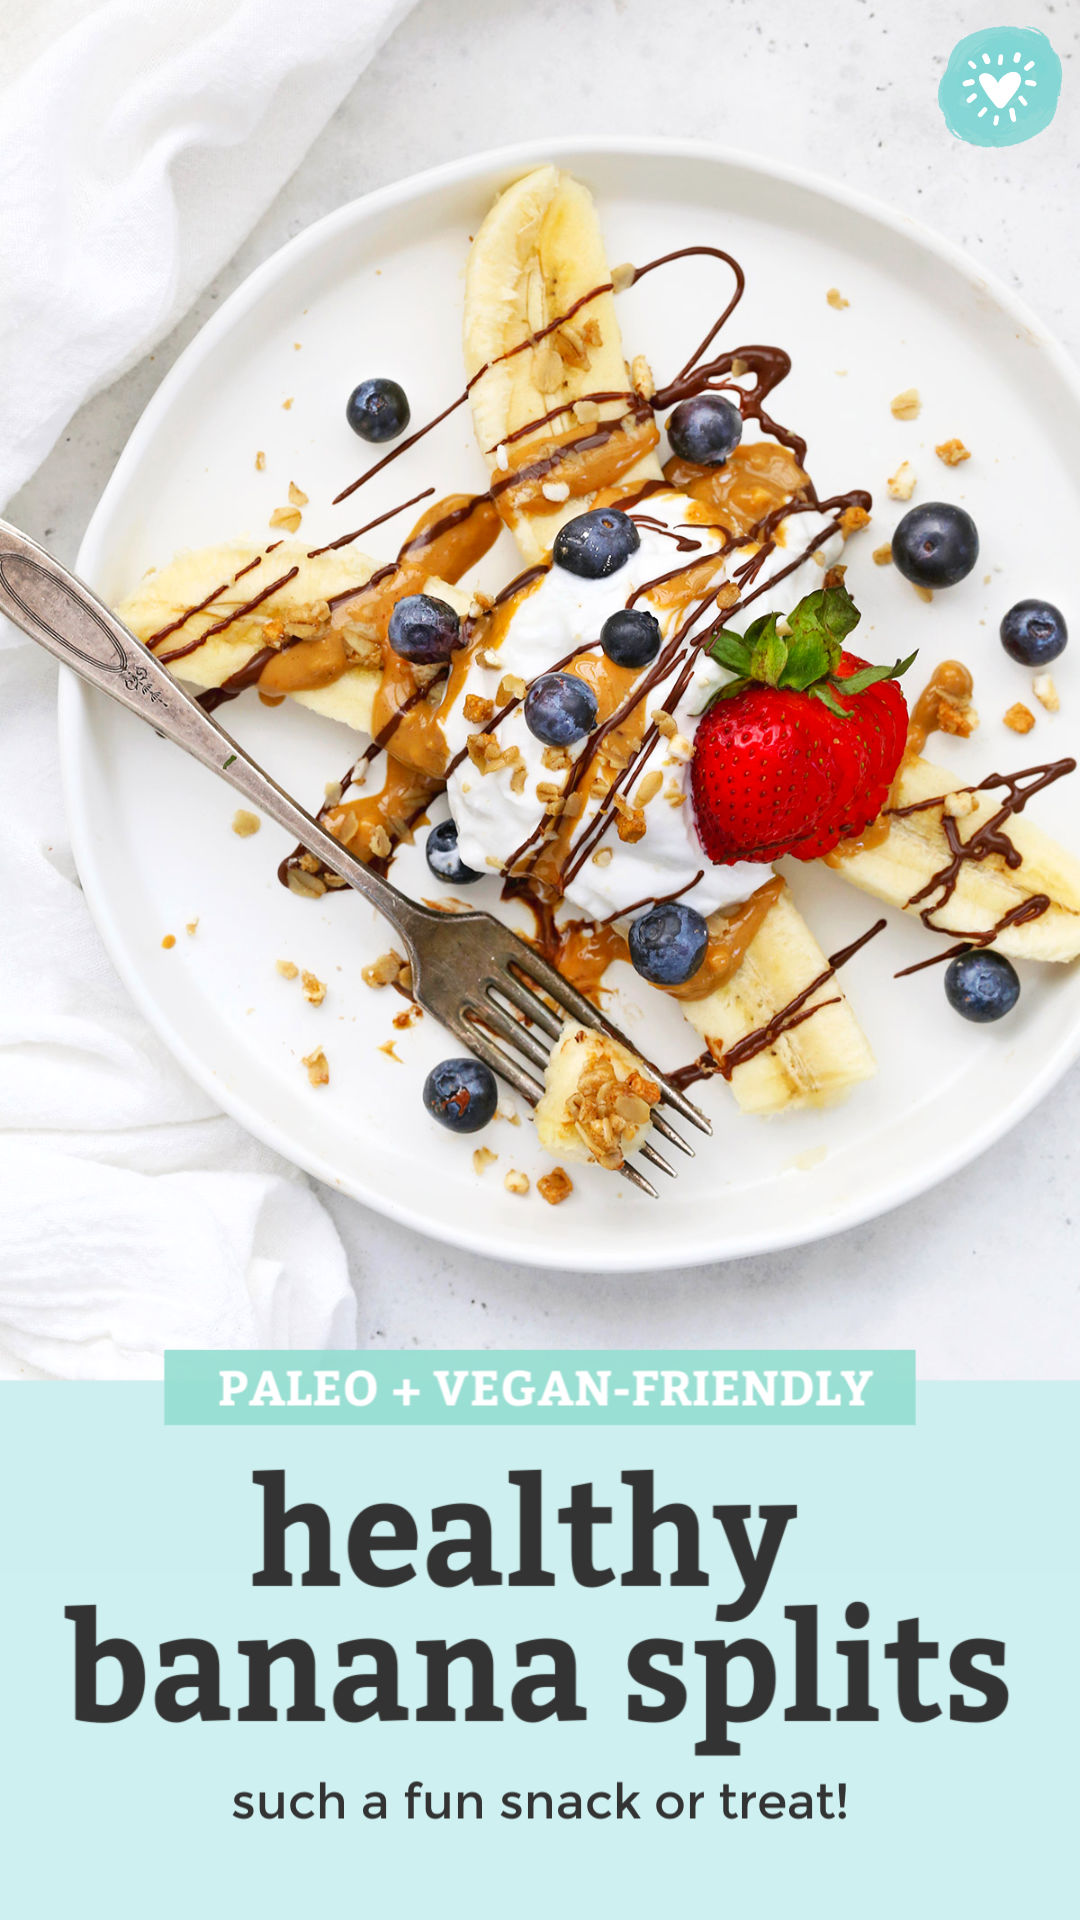 """Healthy Banana Split with Yogurt, Peanut Butter, Chocolate, and berries on a white plate with text overlay that reads """"Paleo + Vegan-Friendly Healthy Banana Splits. Such a fun snack or treat!"""""""